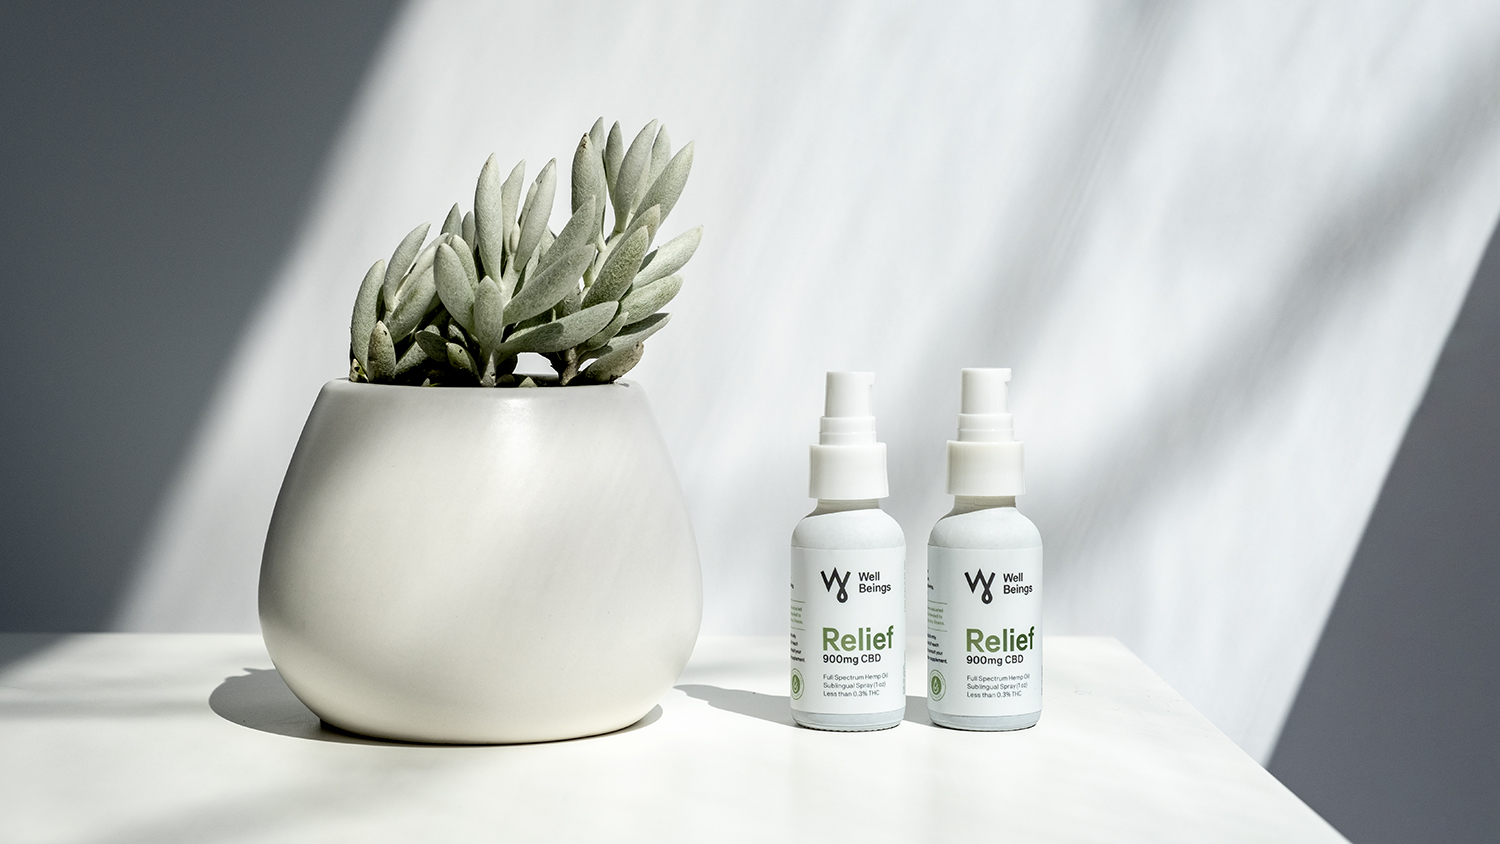 Wellbeings Well-Beings CBD Medical Cannabis Pills Inhaler design photography photoshoot